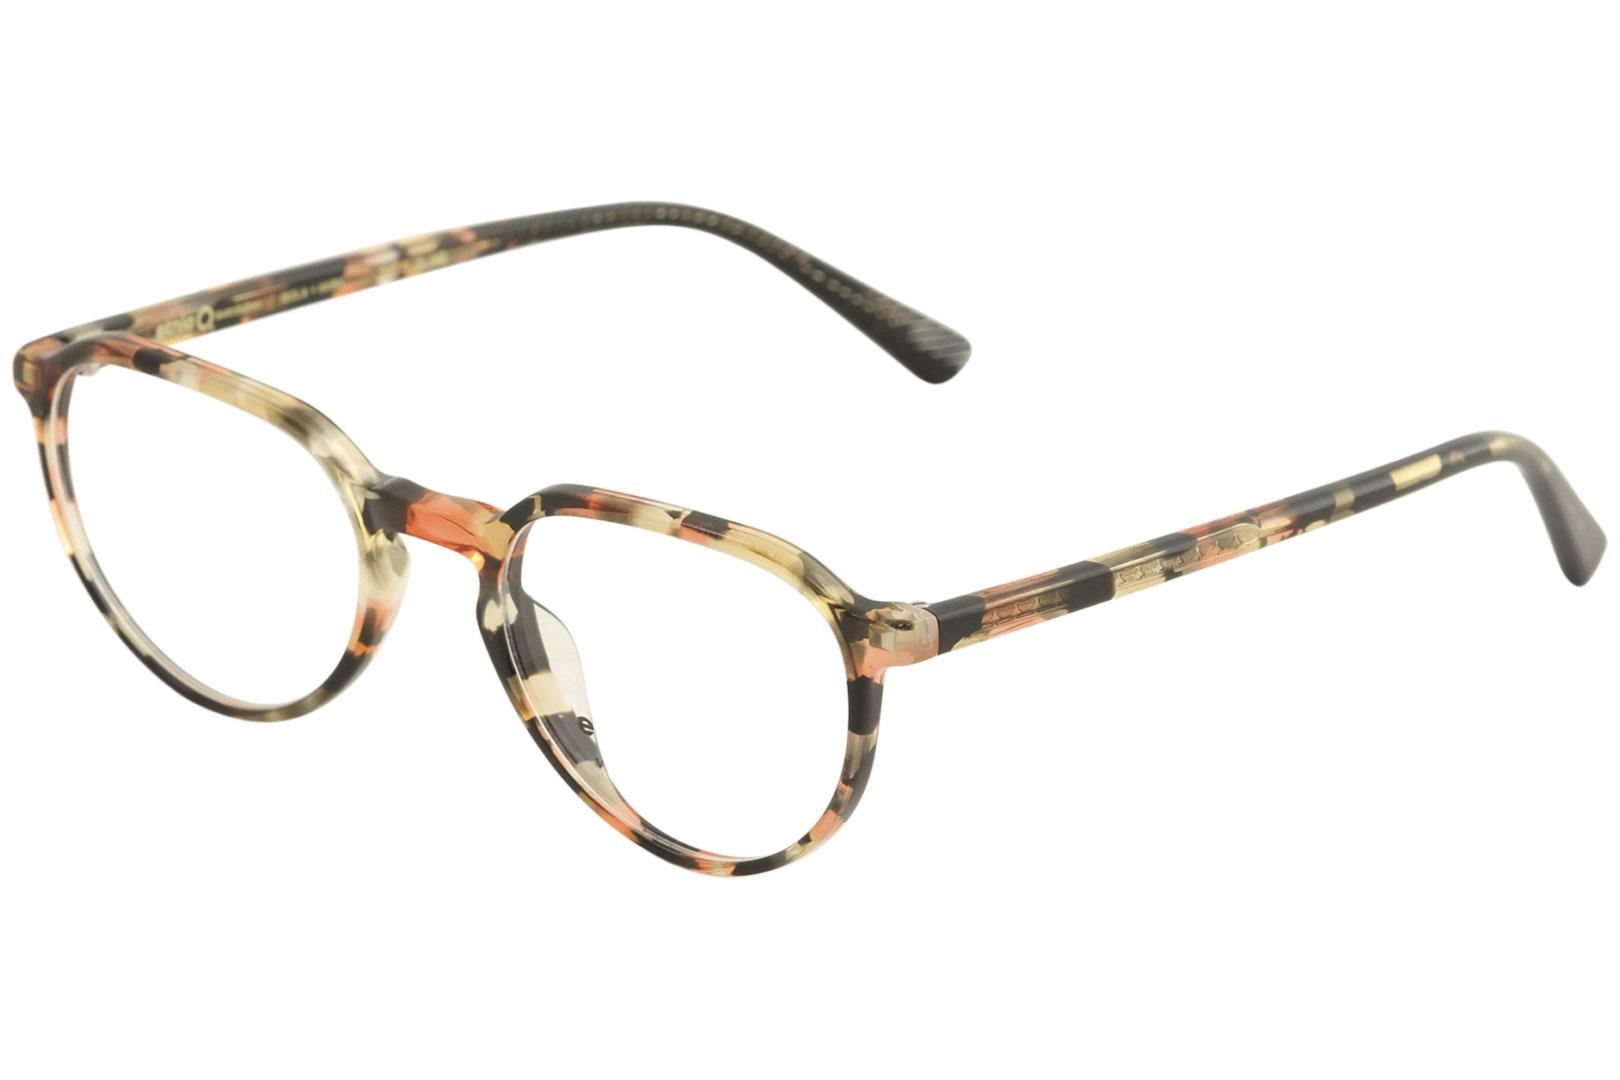 42b2d243e4 Etnia Barcelona Women s Eyeglasses Vintage Collection Isola Optical Frame